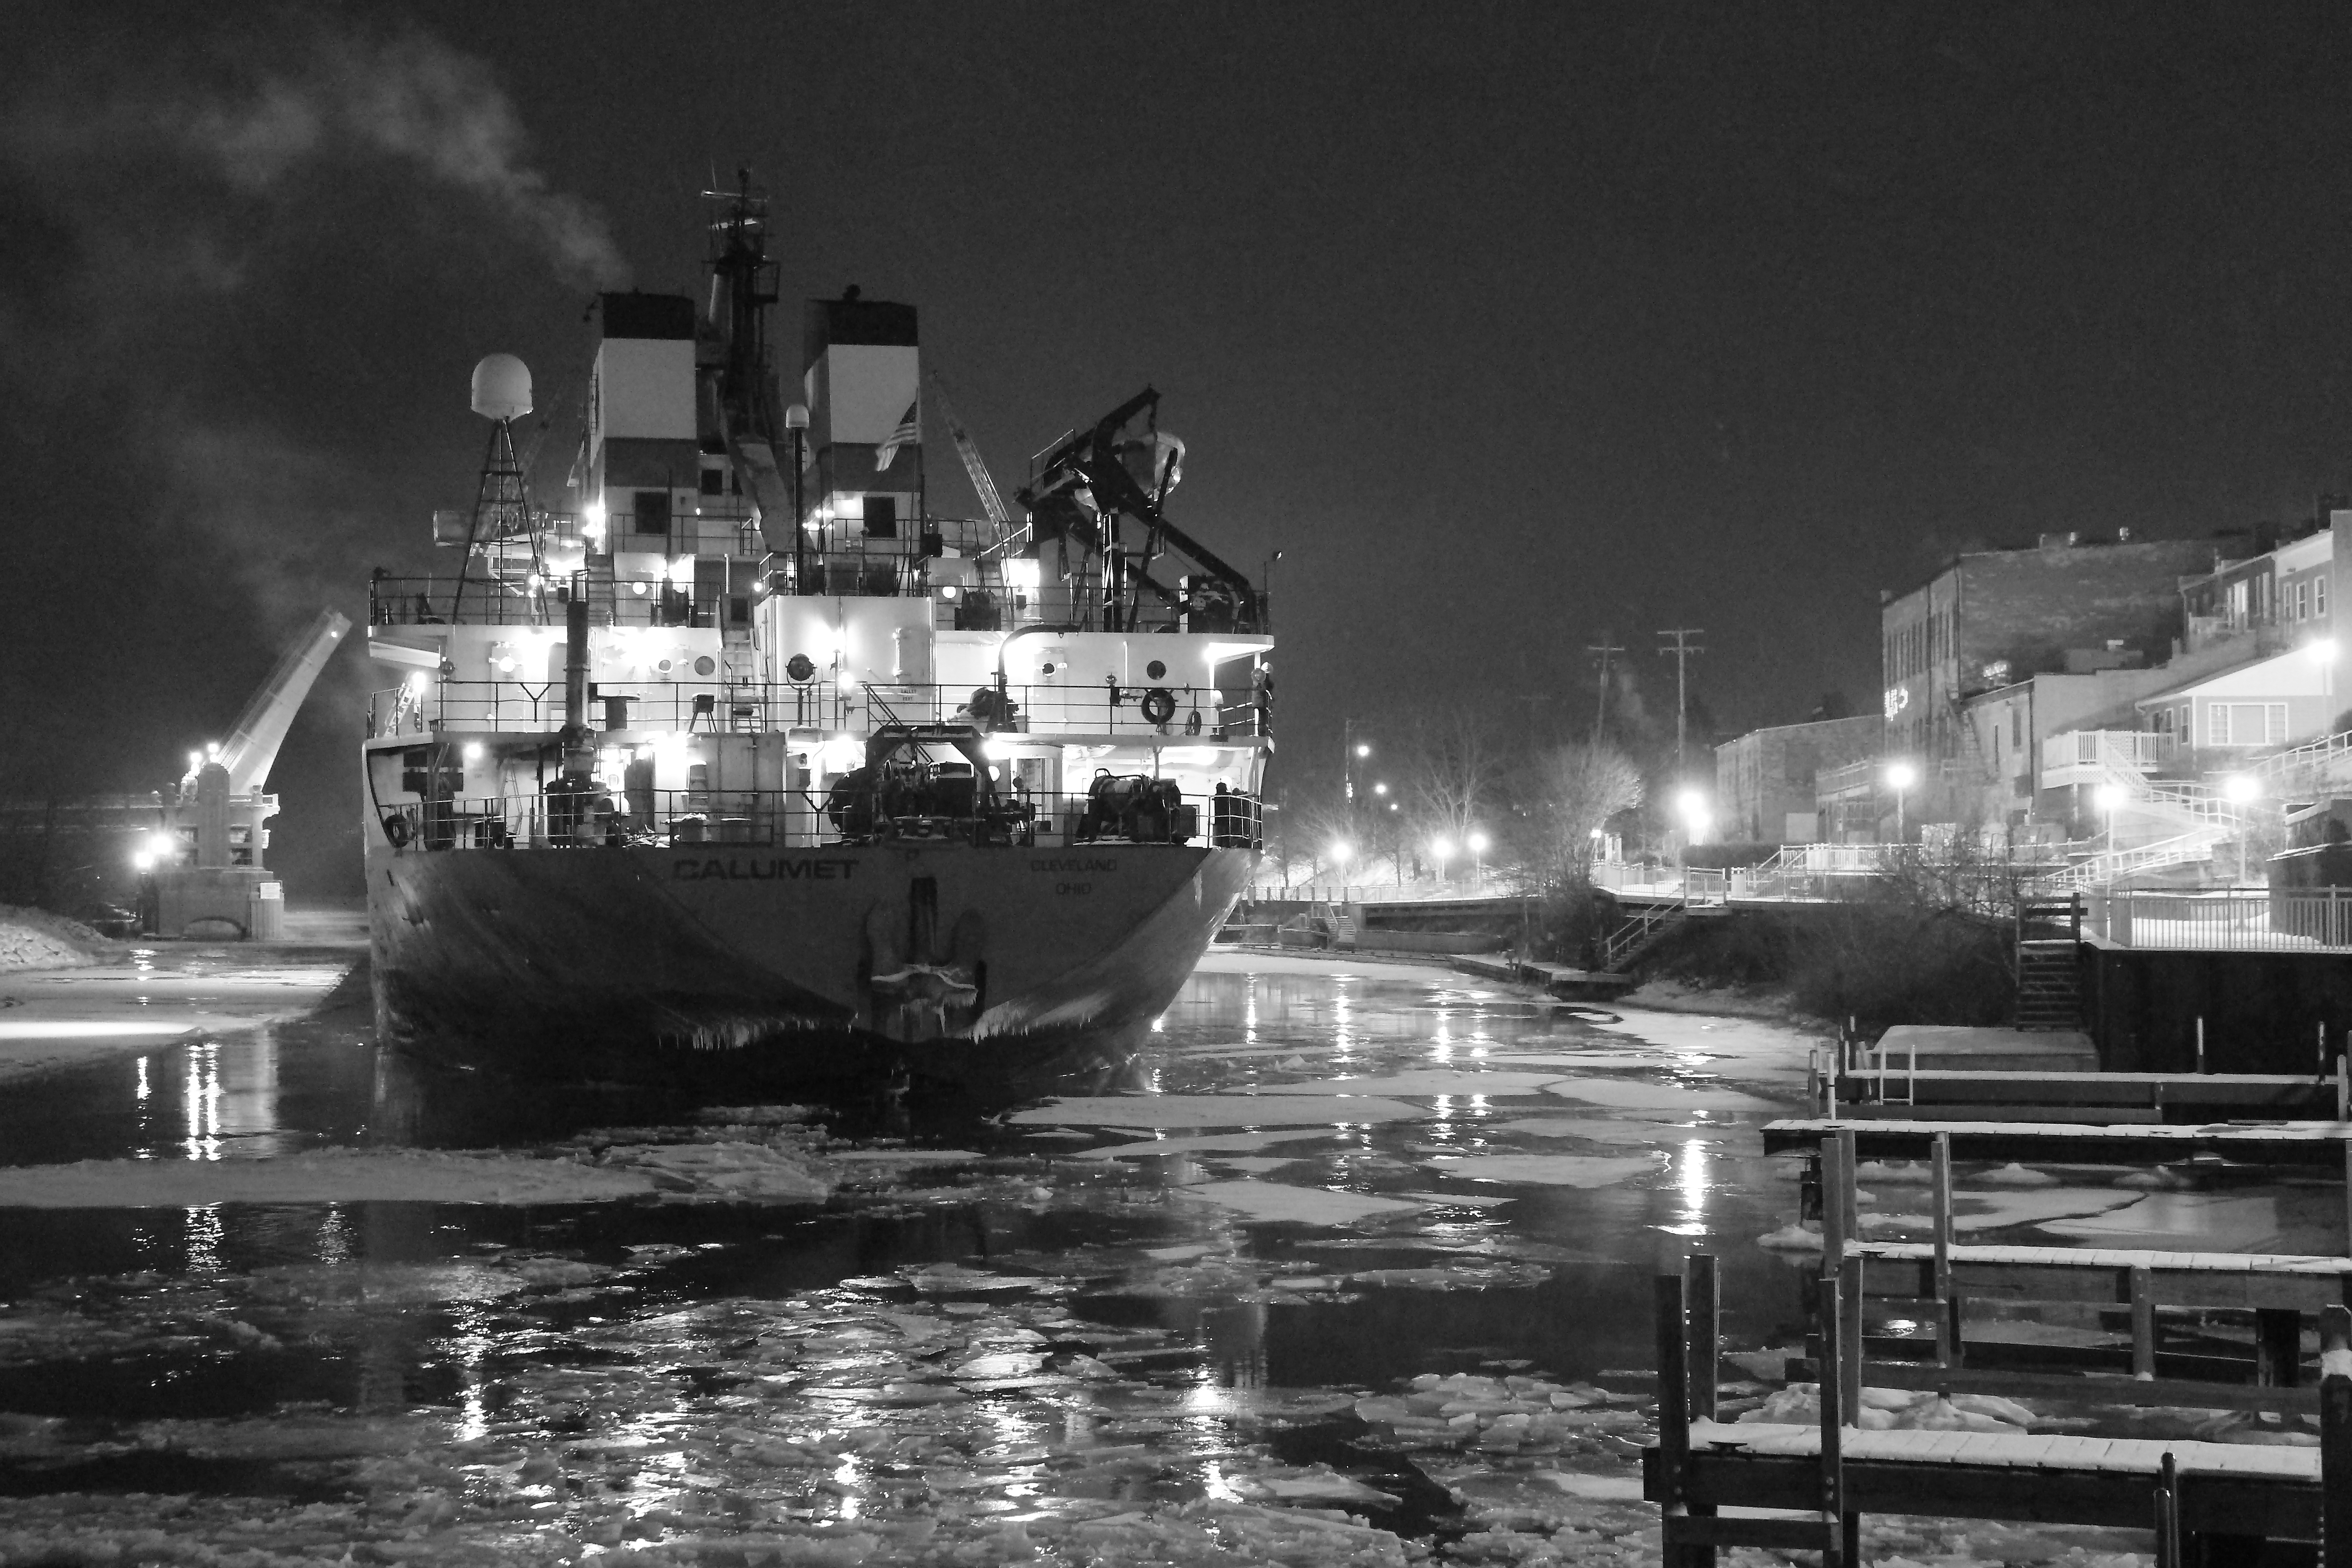 Black and White photo of a Freighter In the Manistee River Channel at night